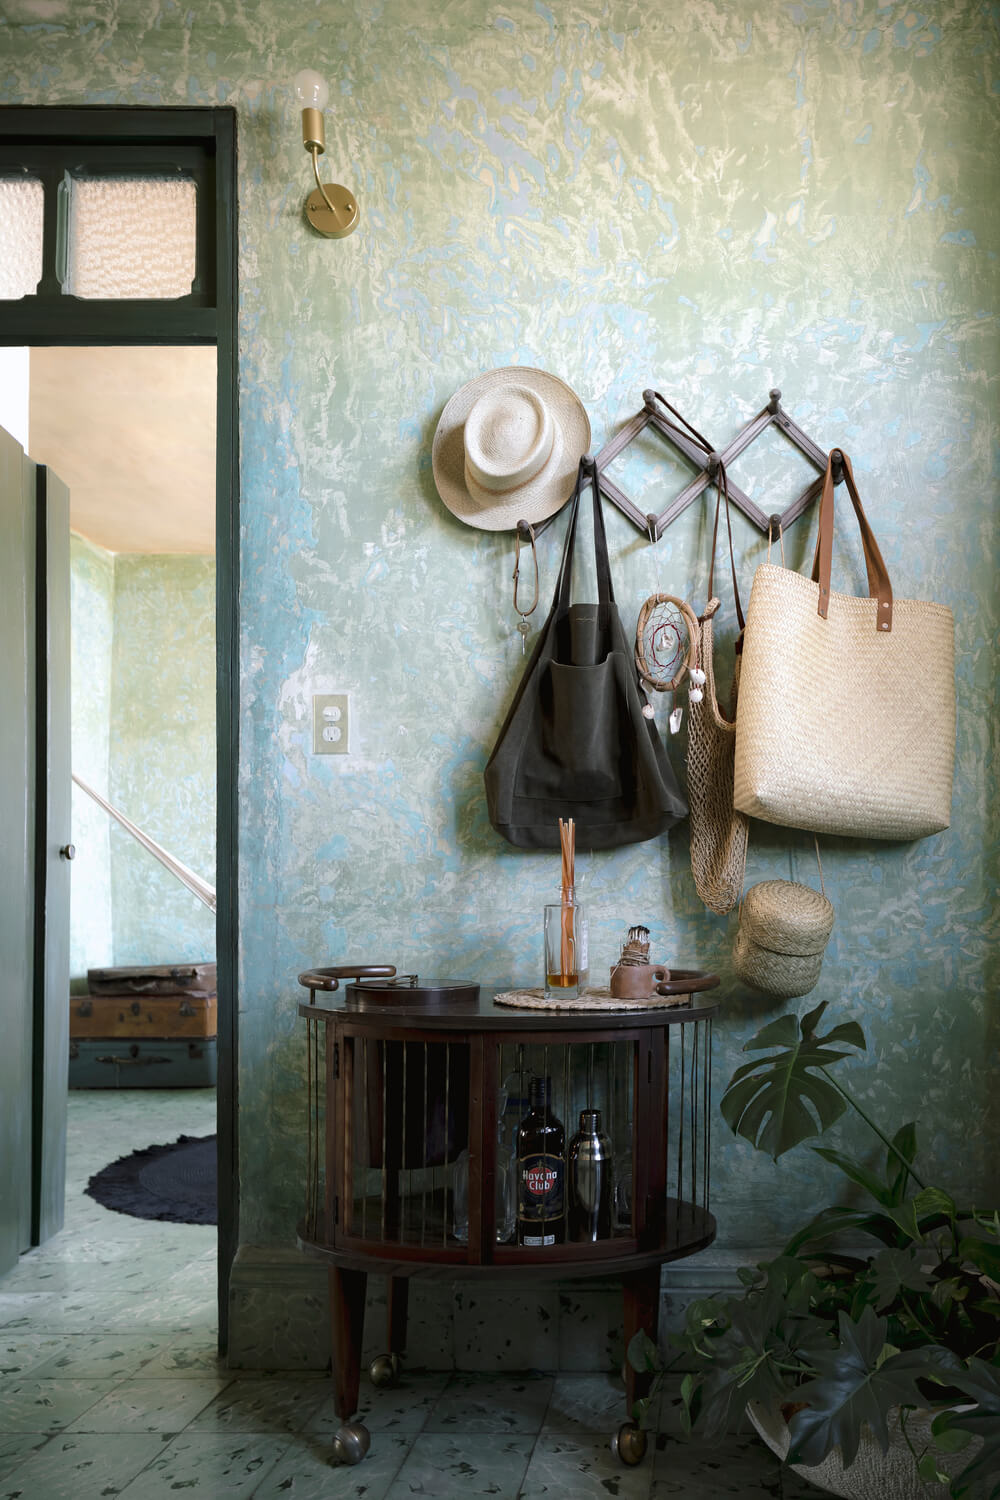 Upon entry of the house, you are welcomed by this simple foyer with a credenza waist-high cabinet topped with a set of hooks for bags and hats.